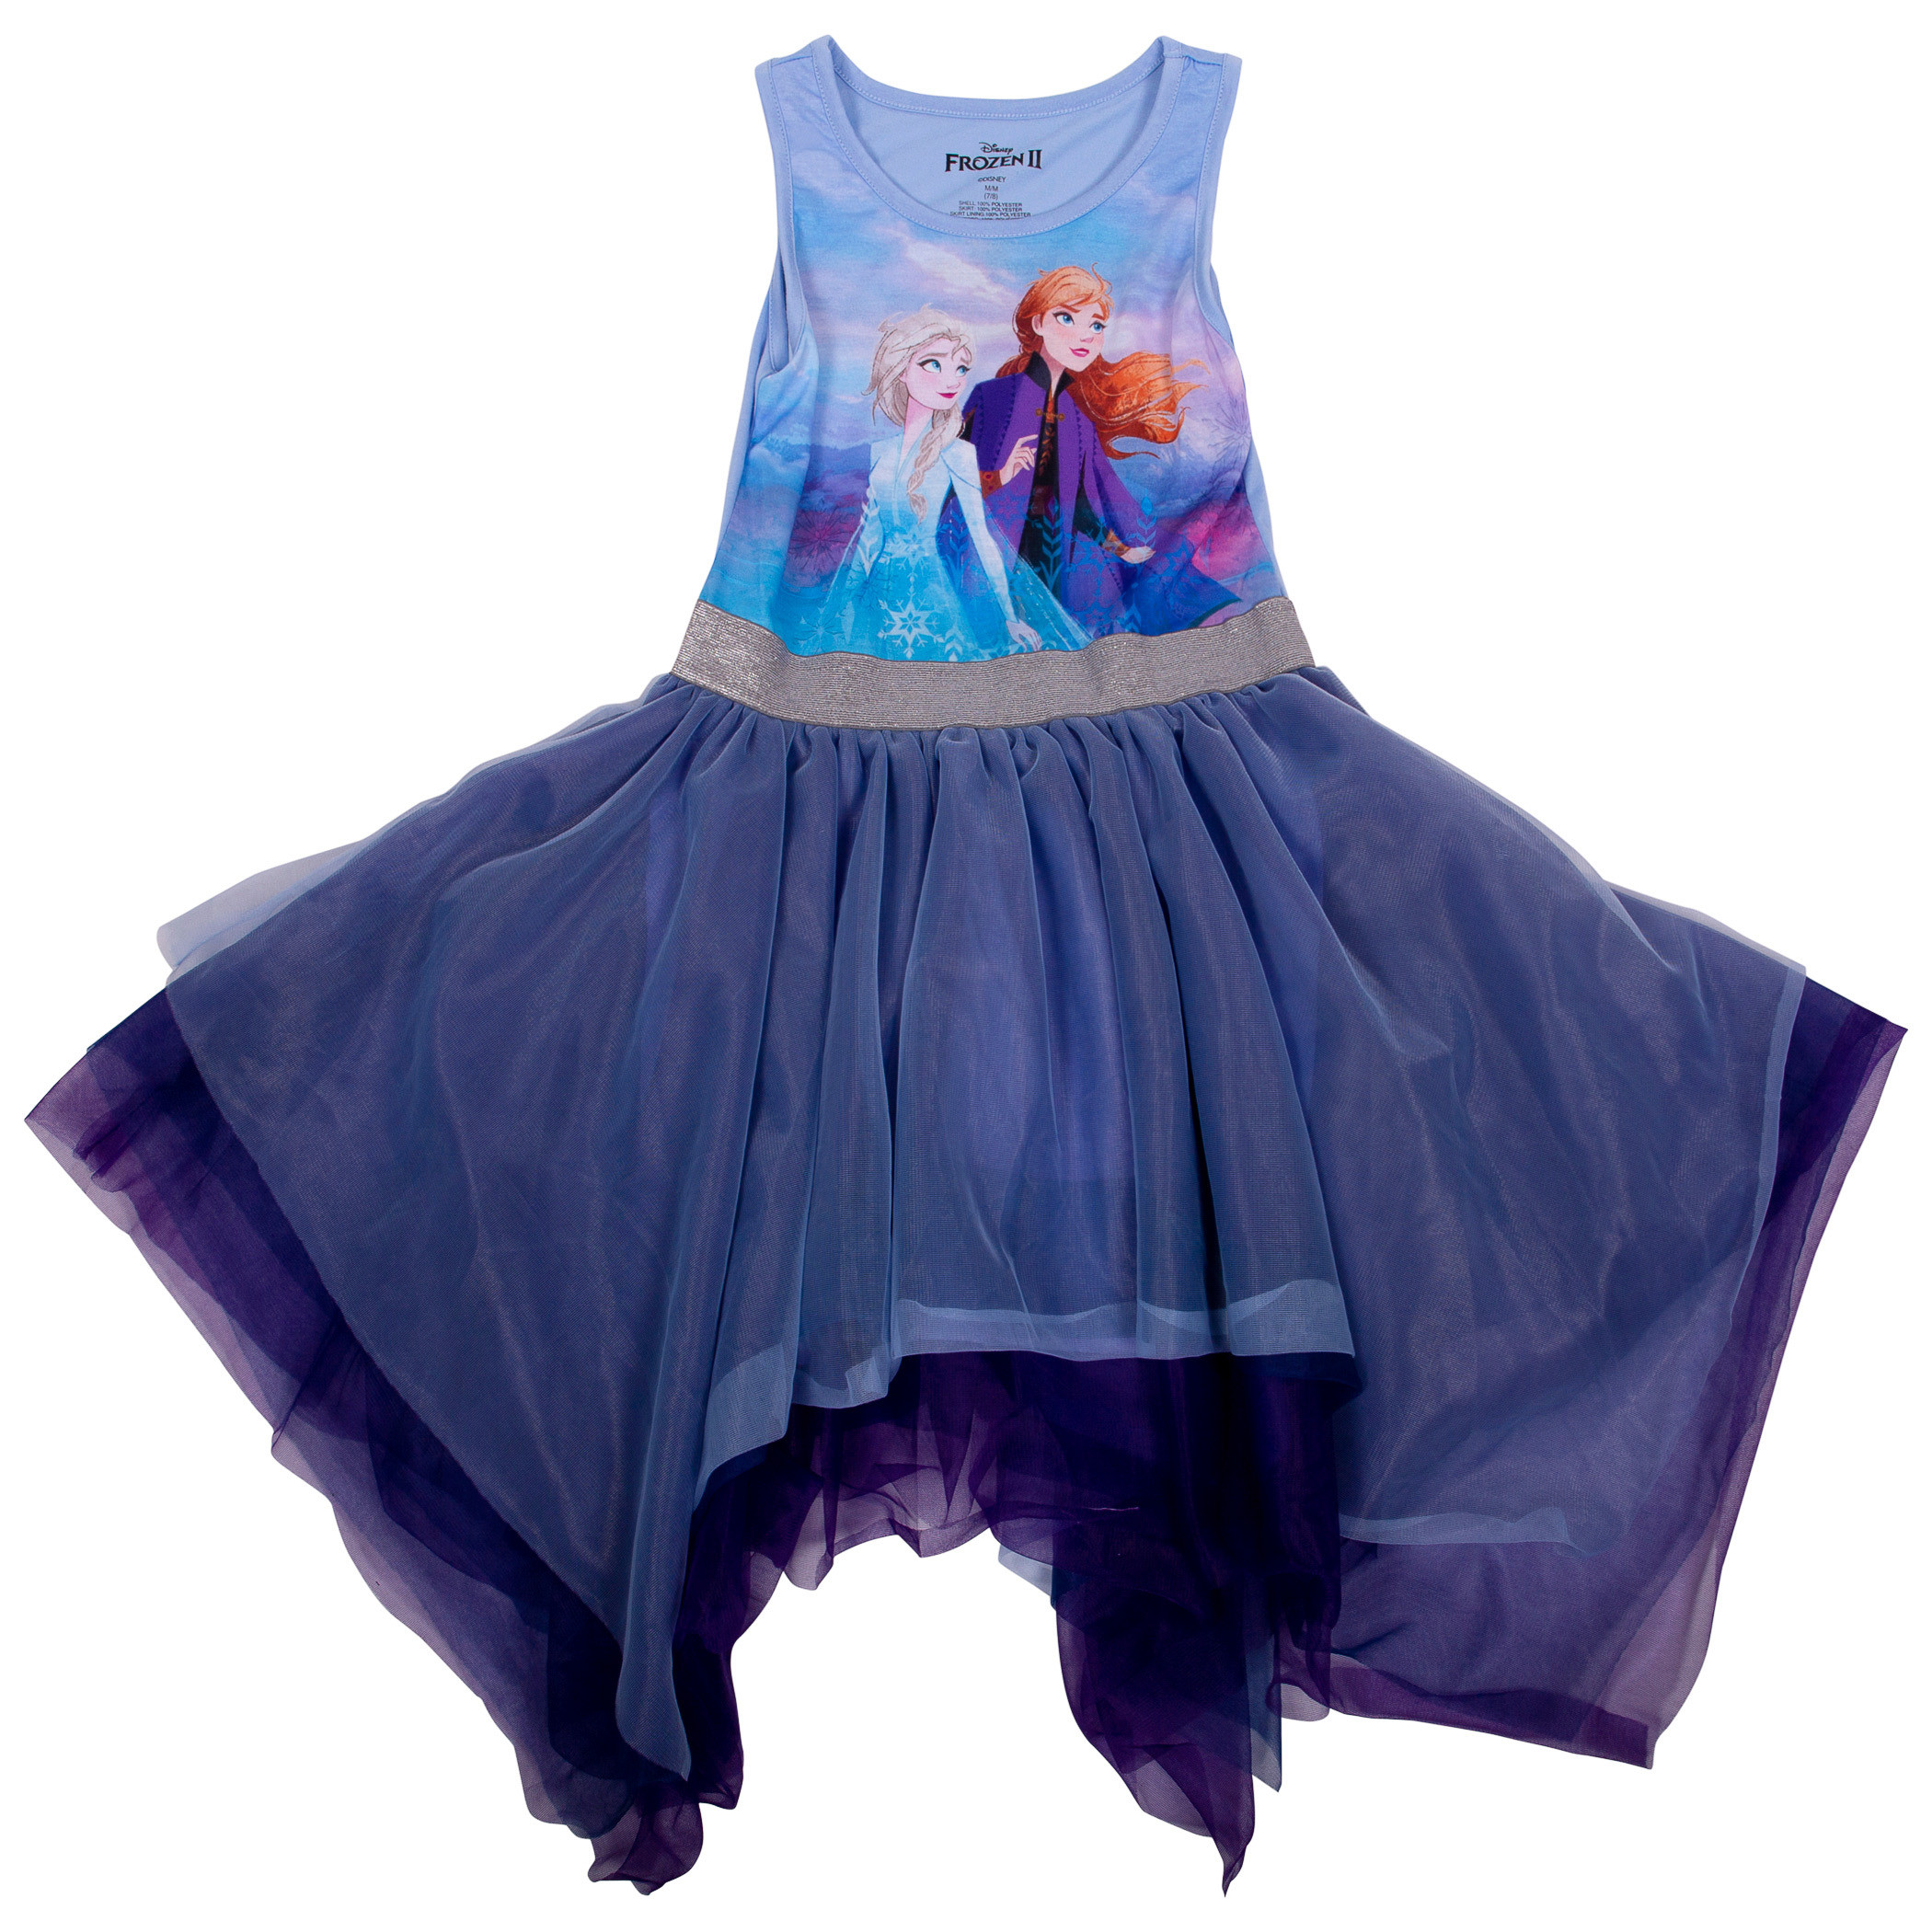 Frozen 2 Girls Tutu Dress With Cape